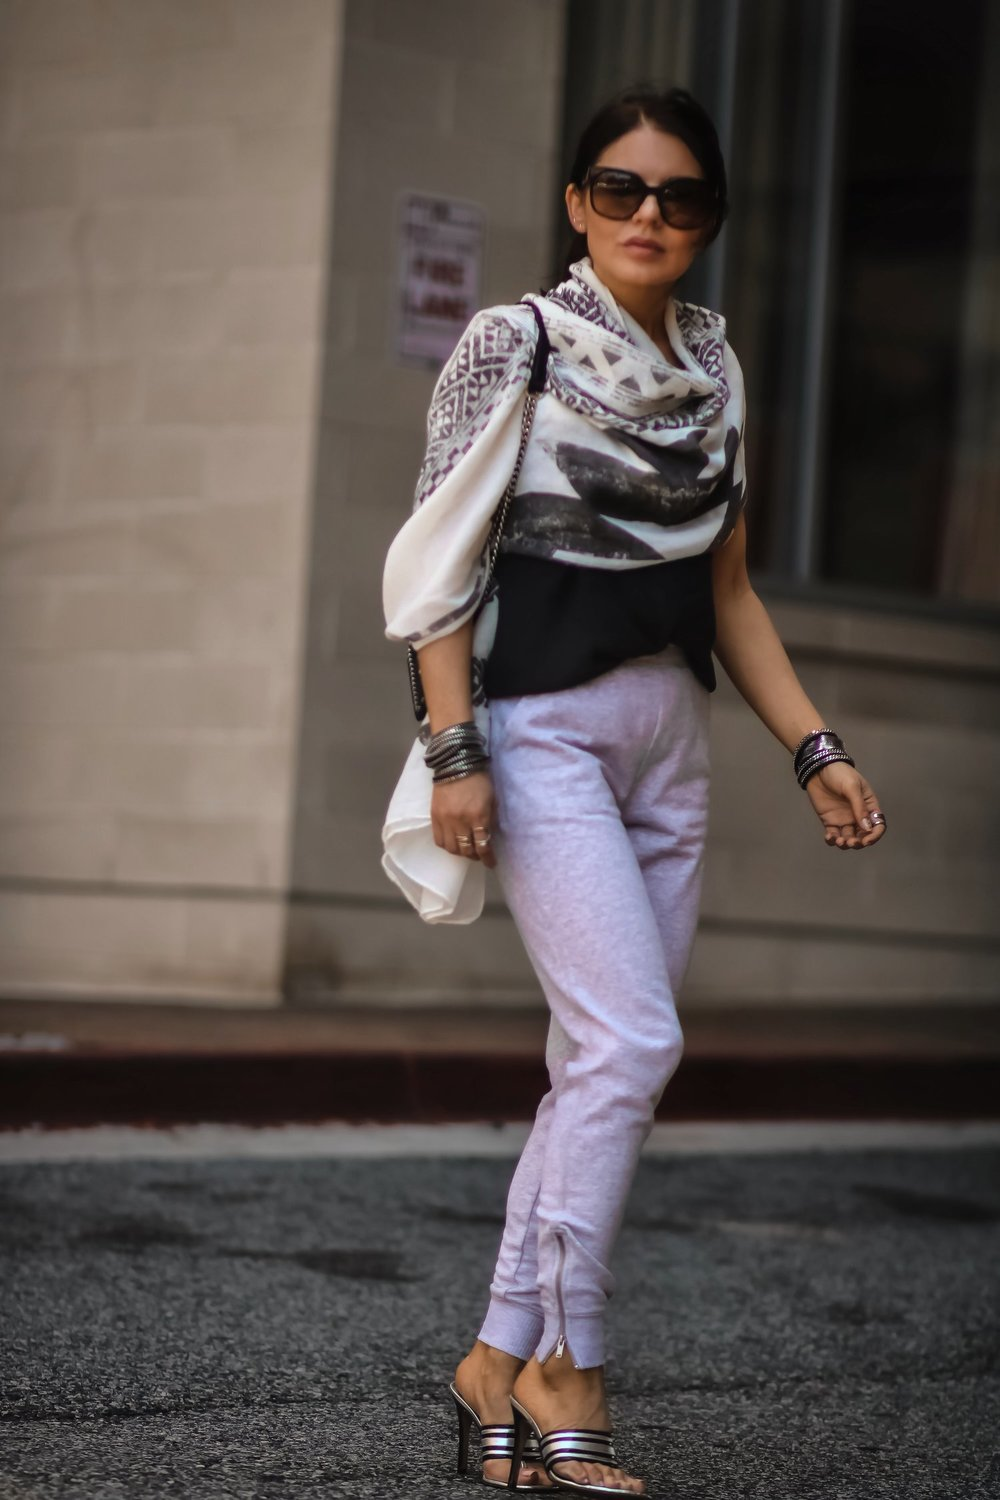 Isabel-Alexander-Aerie-scarf-light-grey-joggers-street-style